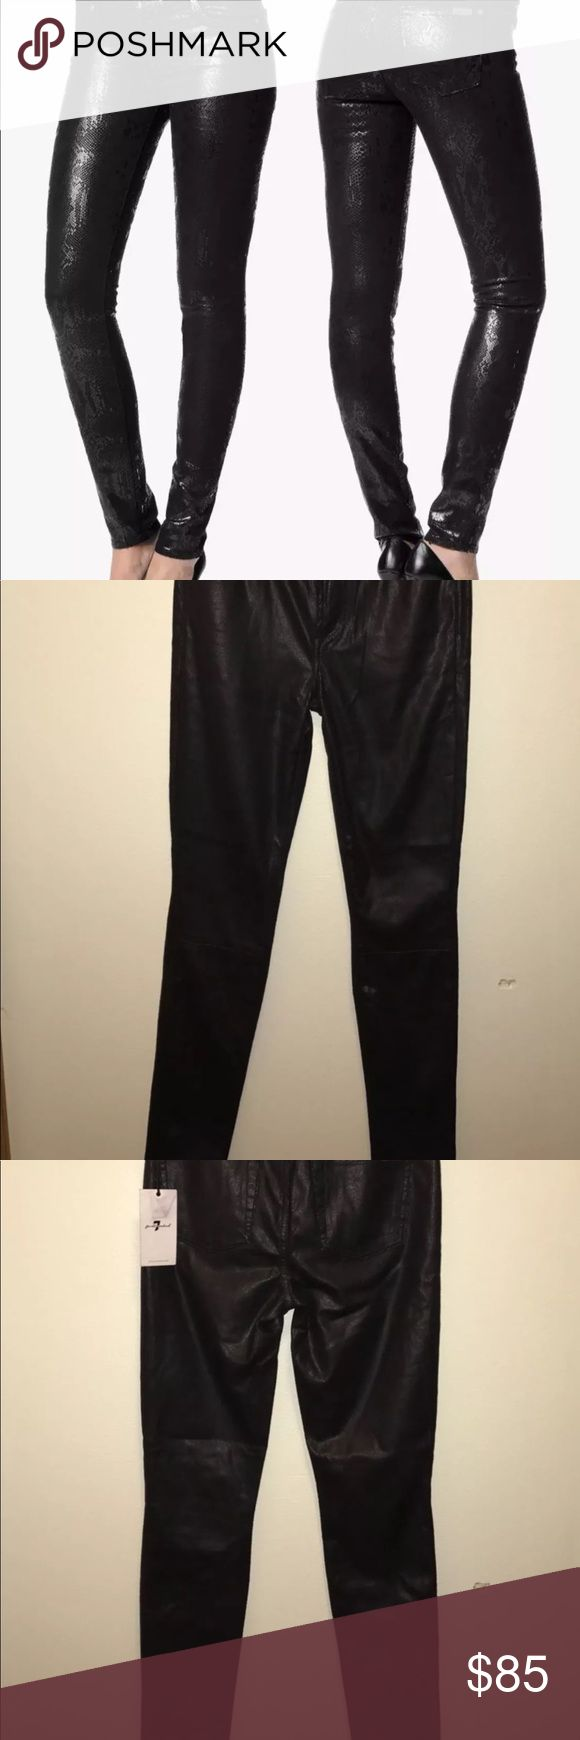 7 for all mankind black skinny Snake print pants New with tags Sz 28 . 7 For All Mankind Pants Skinny